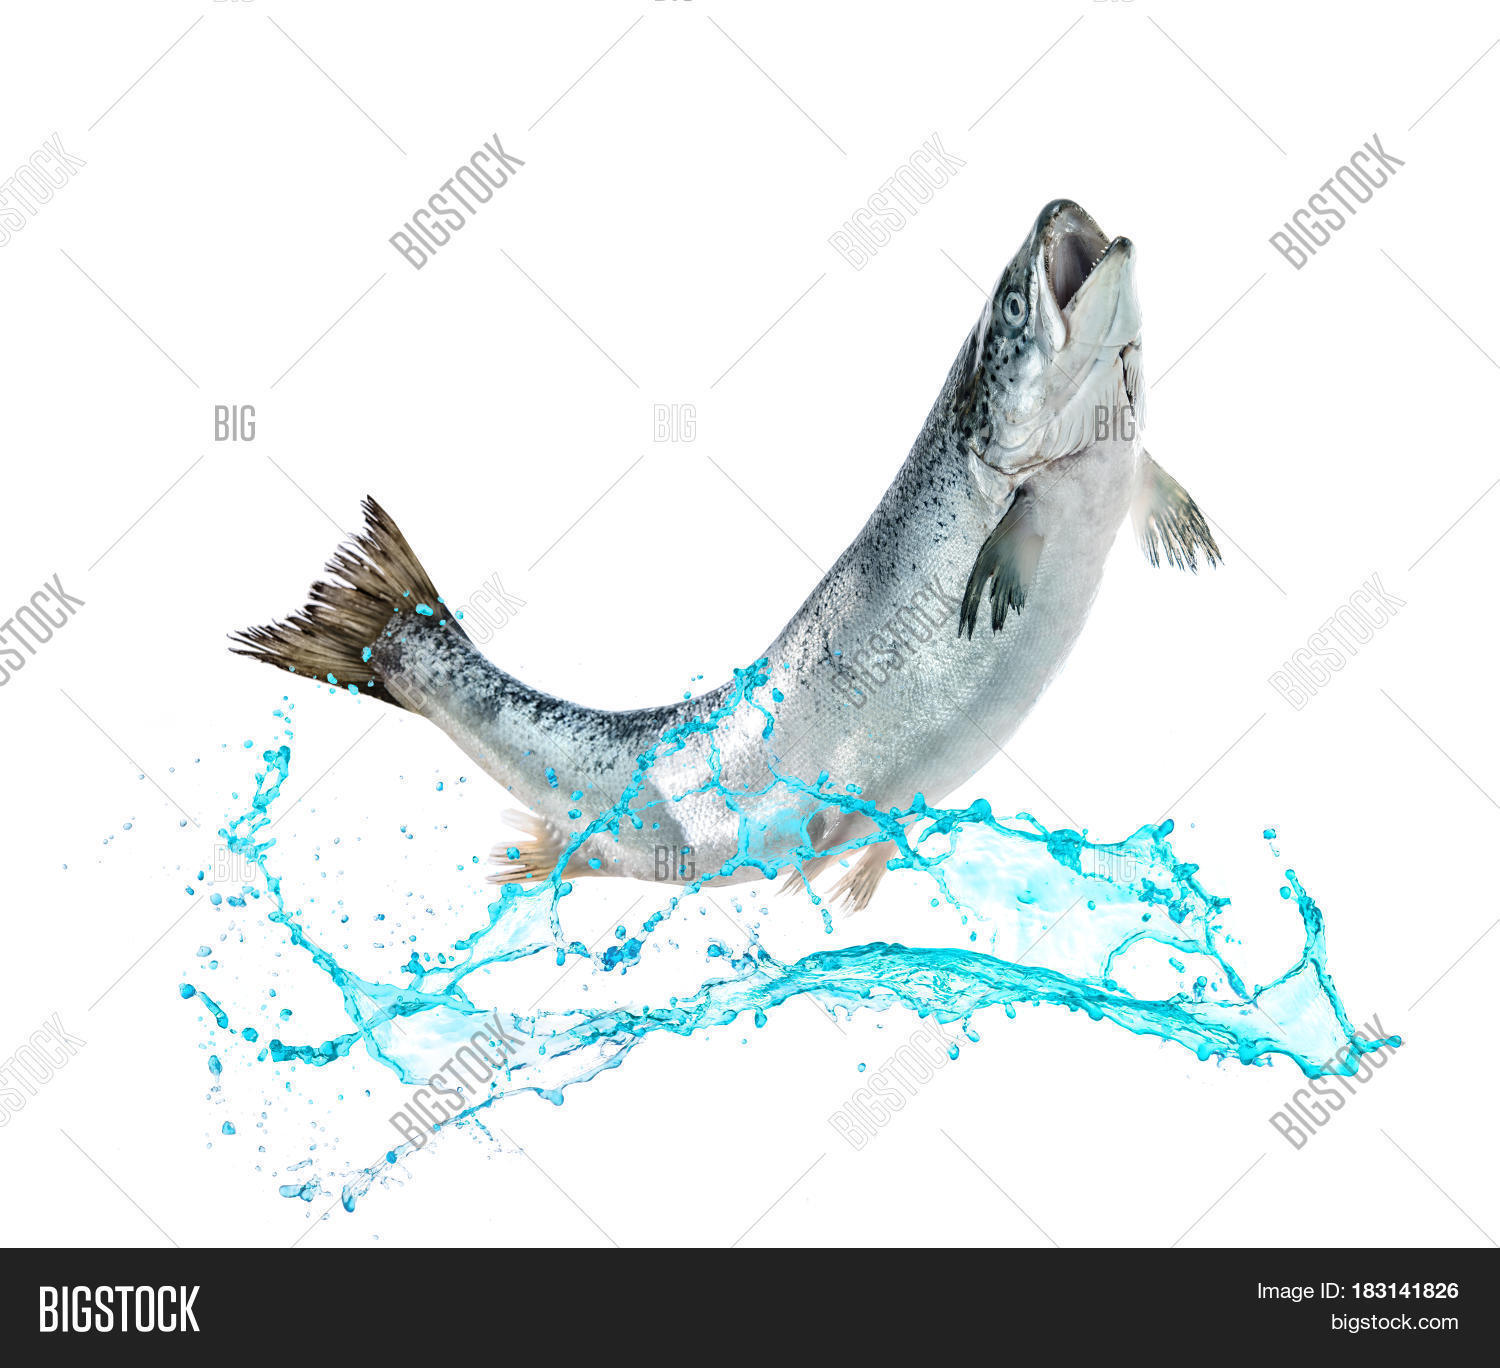 alaskan,angling,animal,atlantic,catch,chinook,close-up,closeup,coho,cooking,cuisine,fin,fish,fishing,flying,food,freshwater,hobbies,industry,isolated,jump,jumper,leisure,macro,mid-air,motion,move,nature,object,ocean,raw,refreshment,river,salmon,saltwater,scales,sea,seafood,sockeye,splash,splashing,sport,swim,tail,trout,underwater,water,wild,wildlife